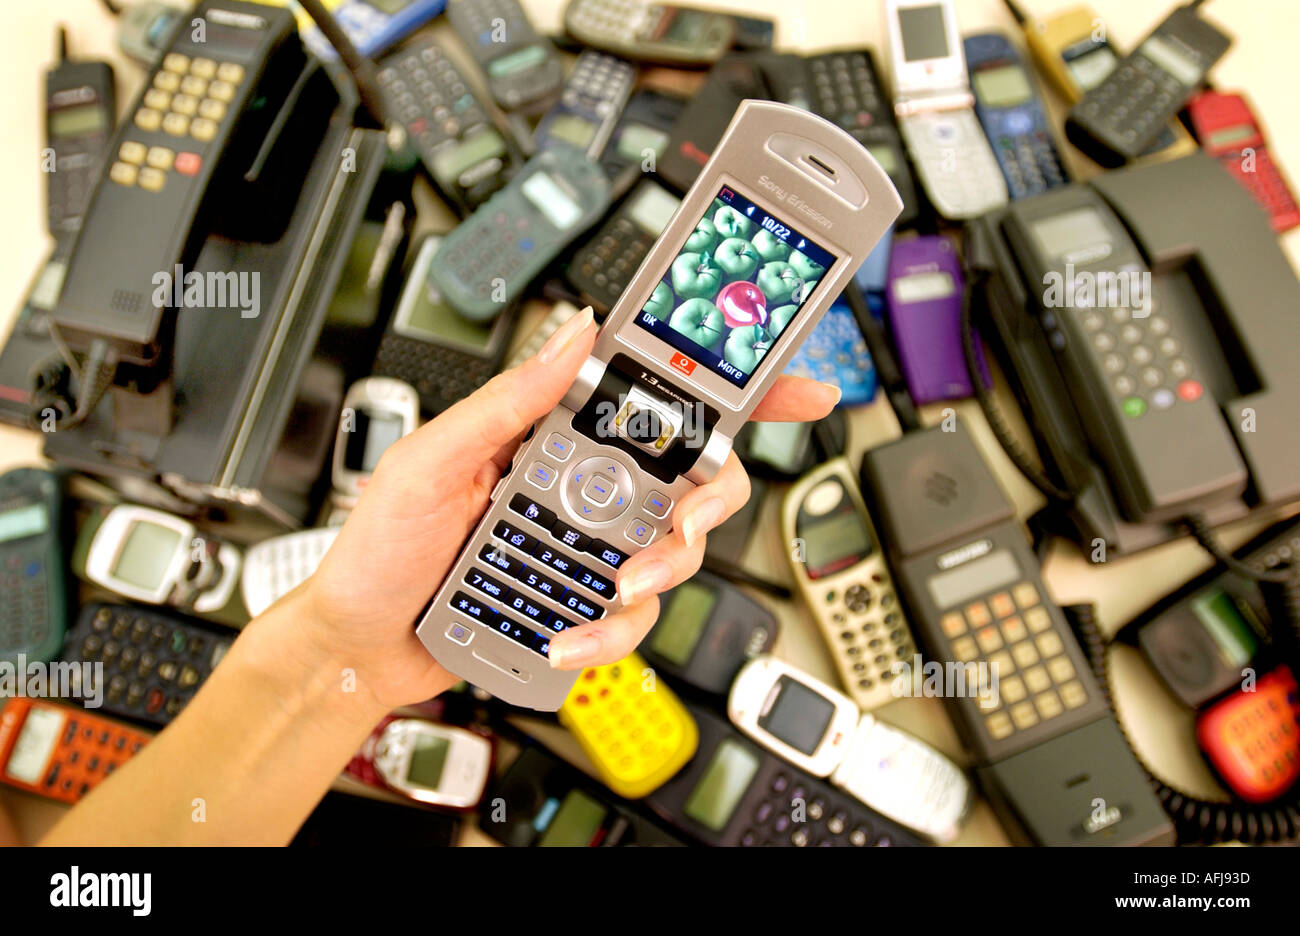 Vodafone shows off 20 years of mobile phone styles from 1984 to 2004 - Stock Image